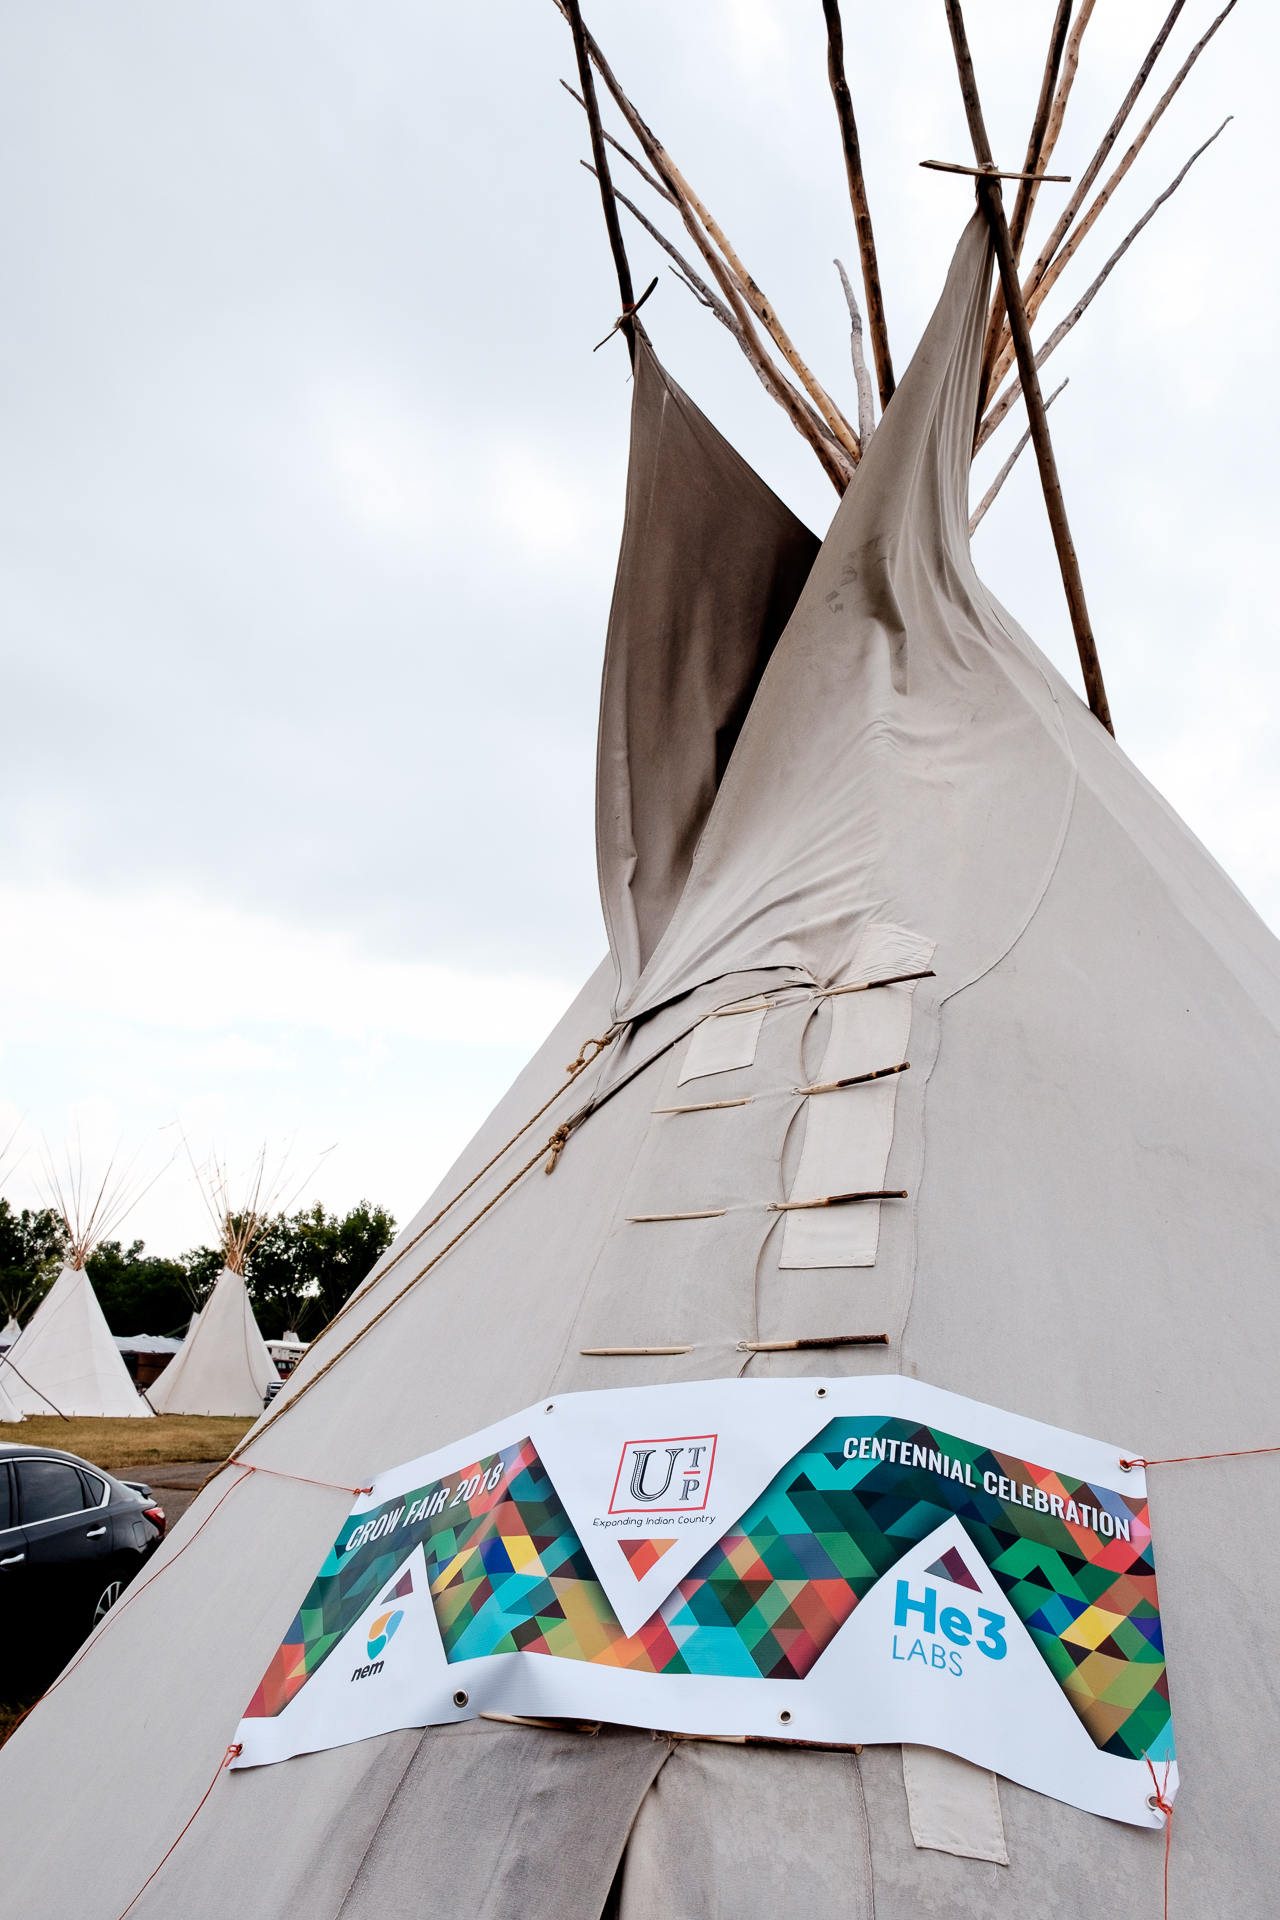 He3labs official demo teepee.